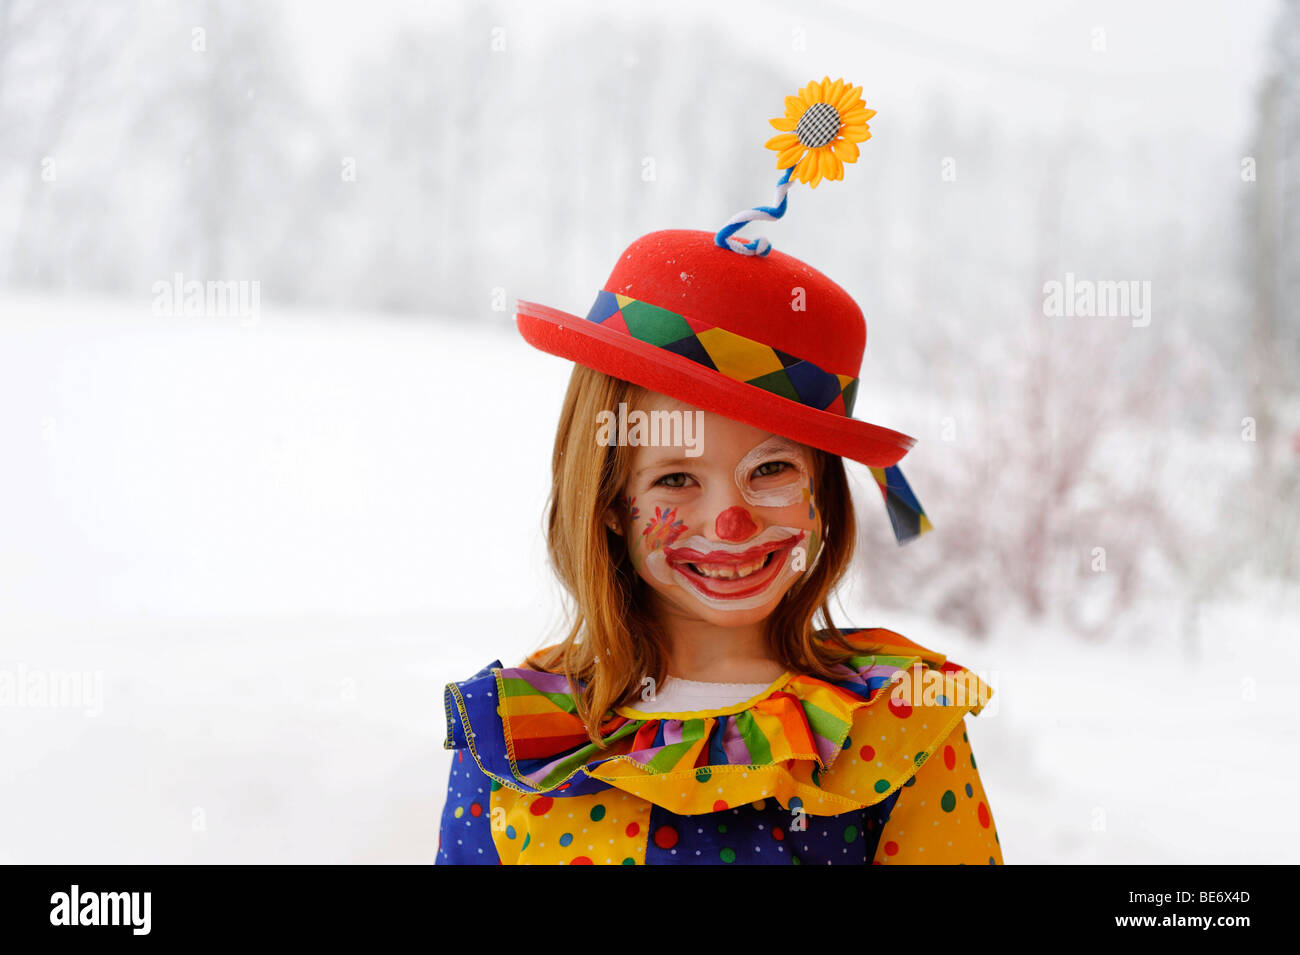 Clown girl in carnival costume Stock Photo